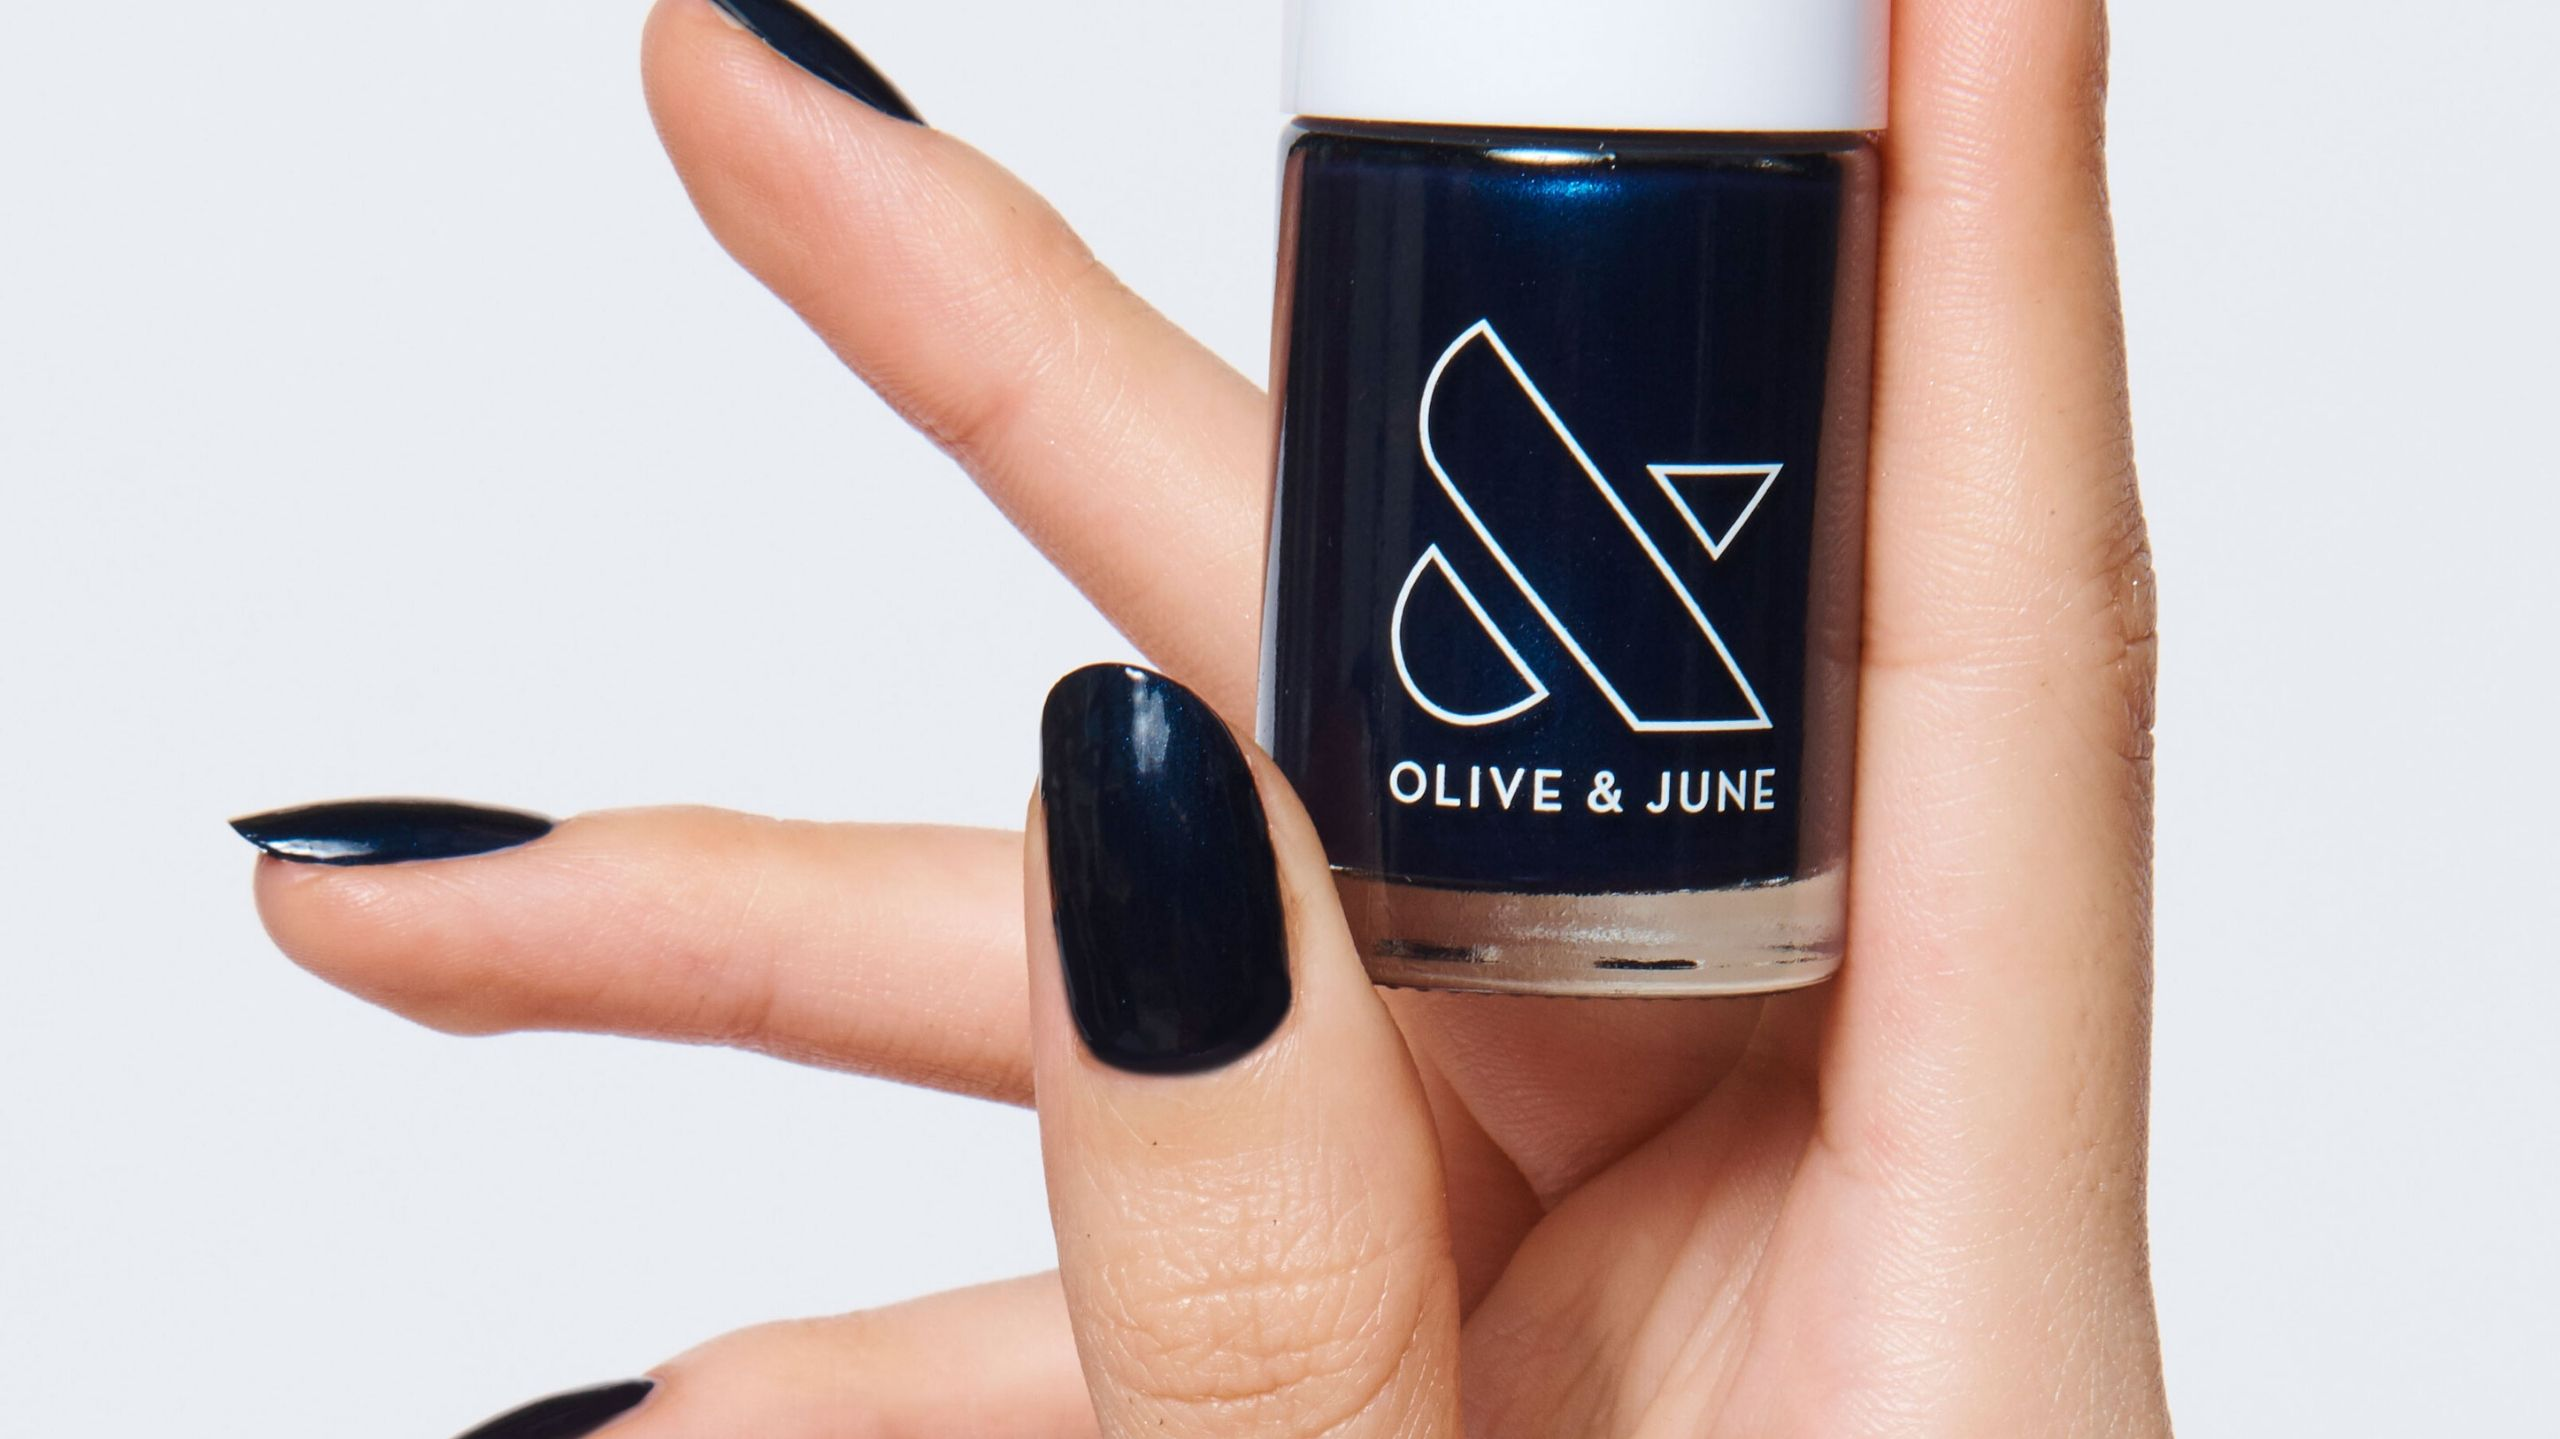 Olive & June's Holiday Collection Is a Totally Unexpected Moody Vibe